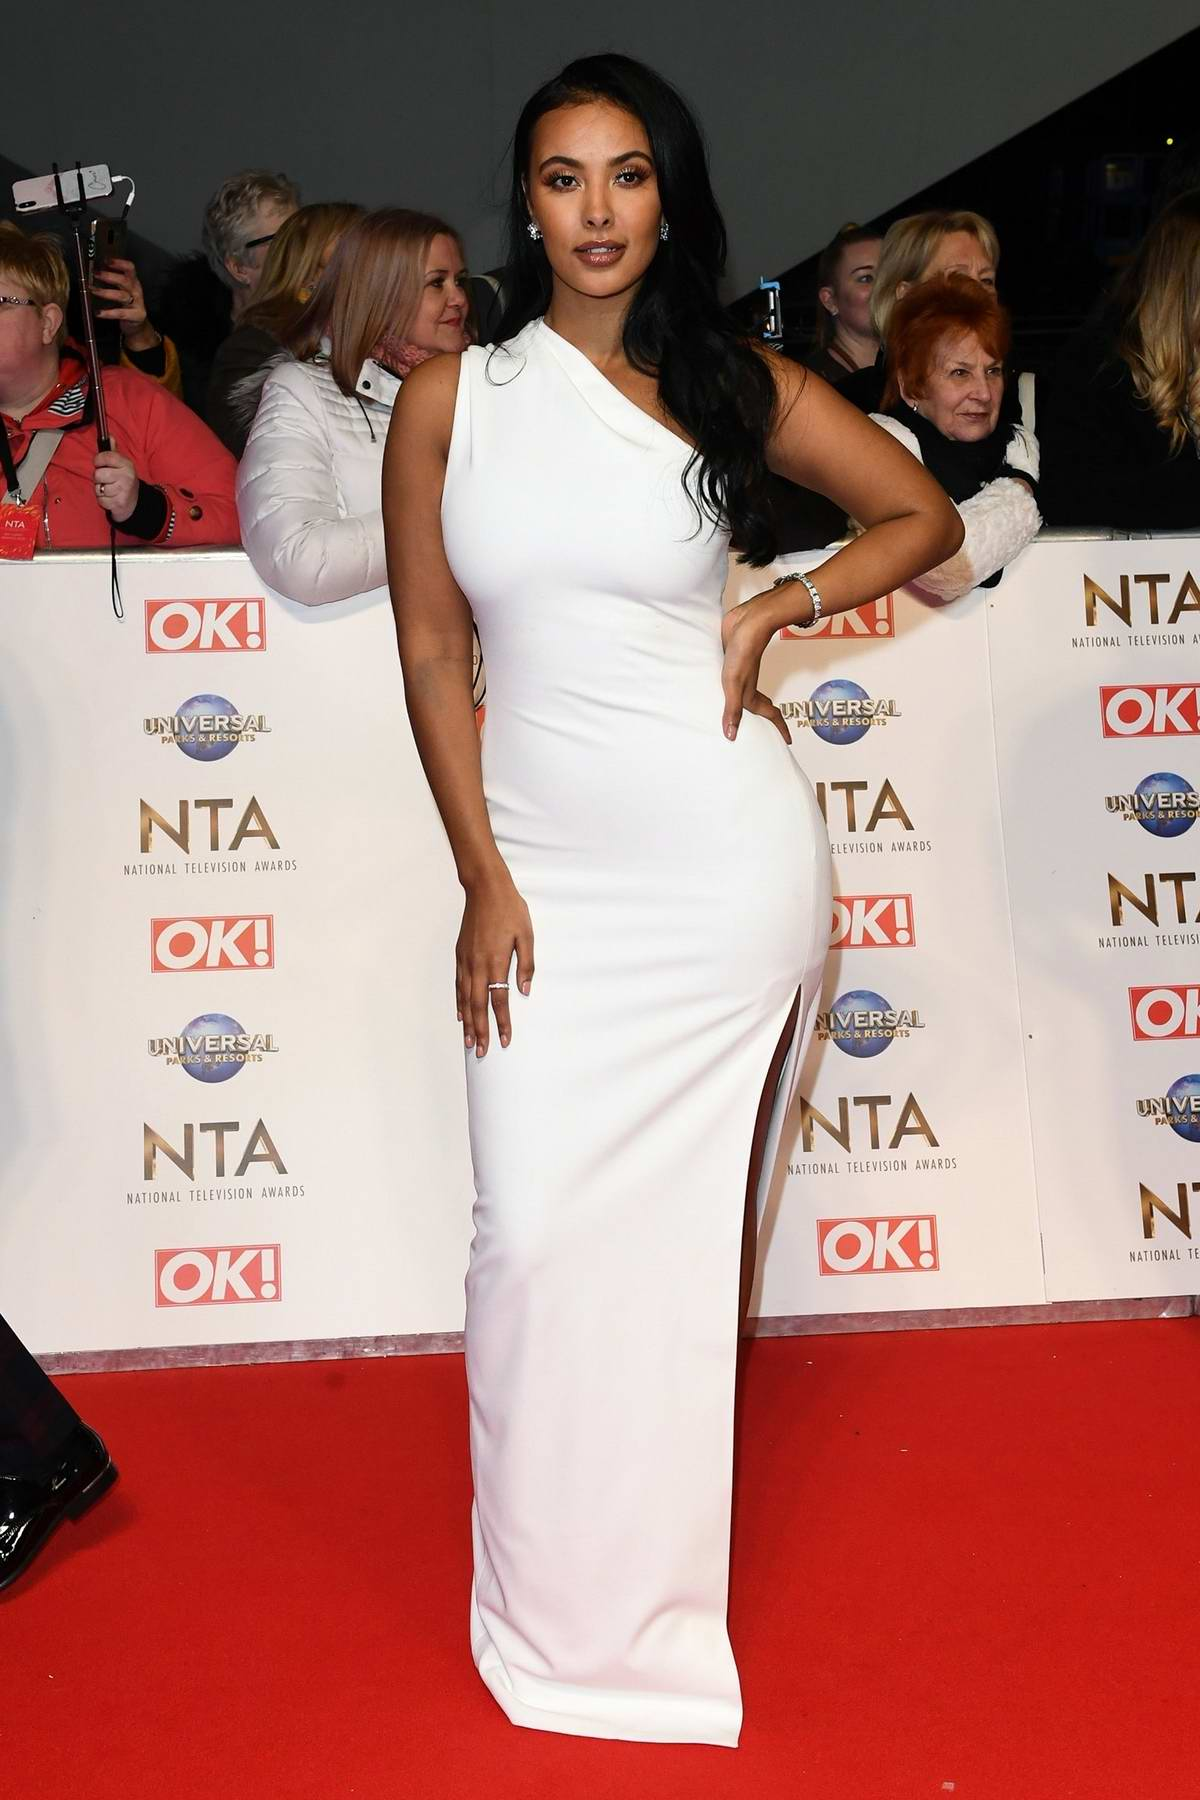 Maya Jama attends the National Television Awards 2020 at The O2 Arena in London, UK